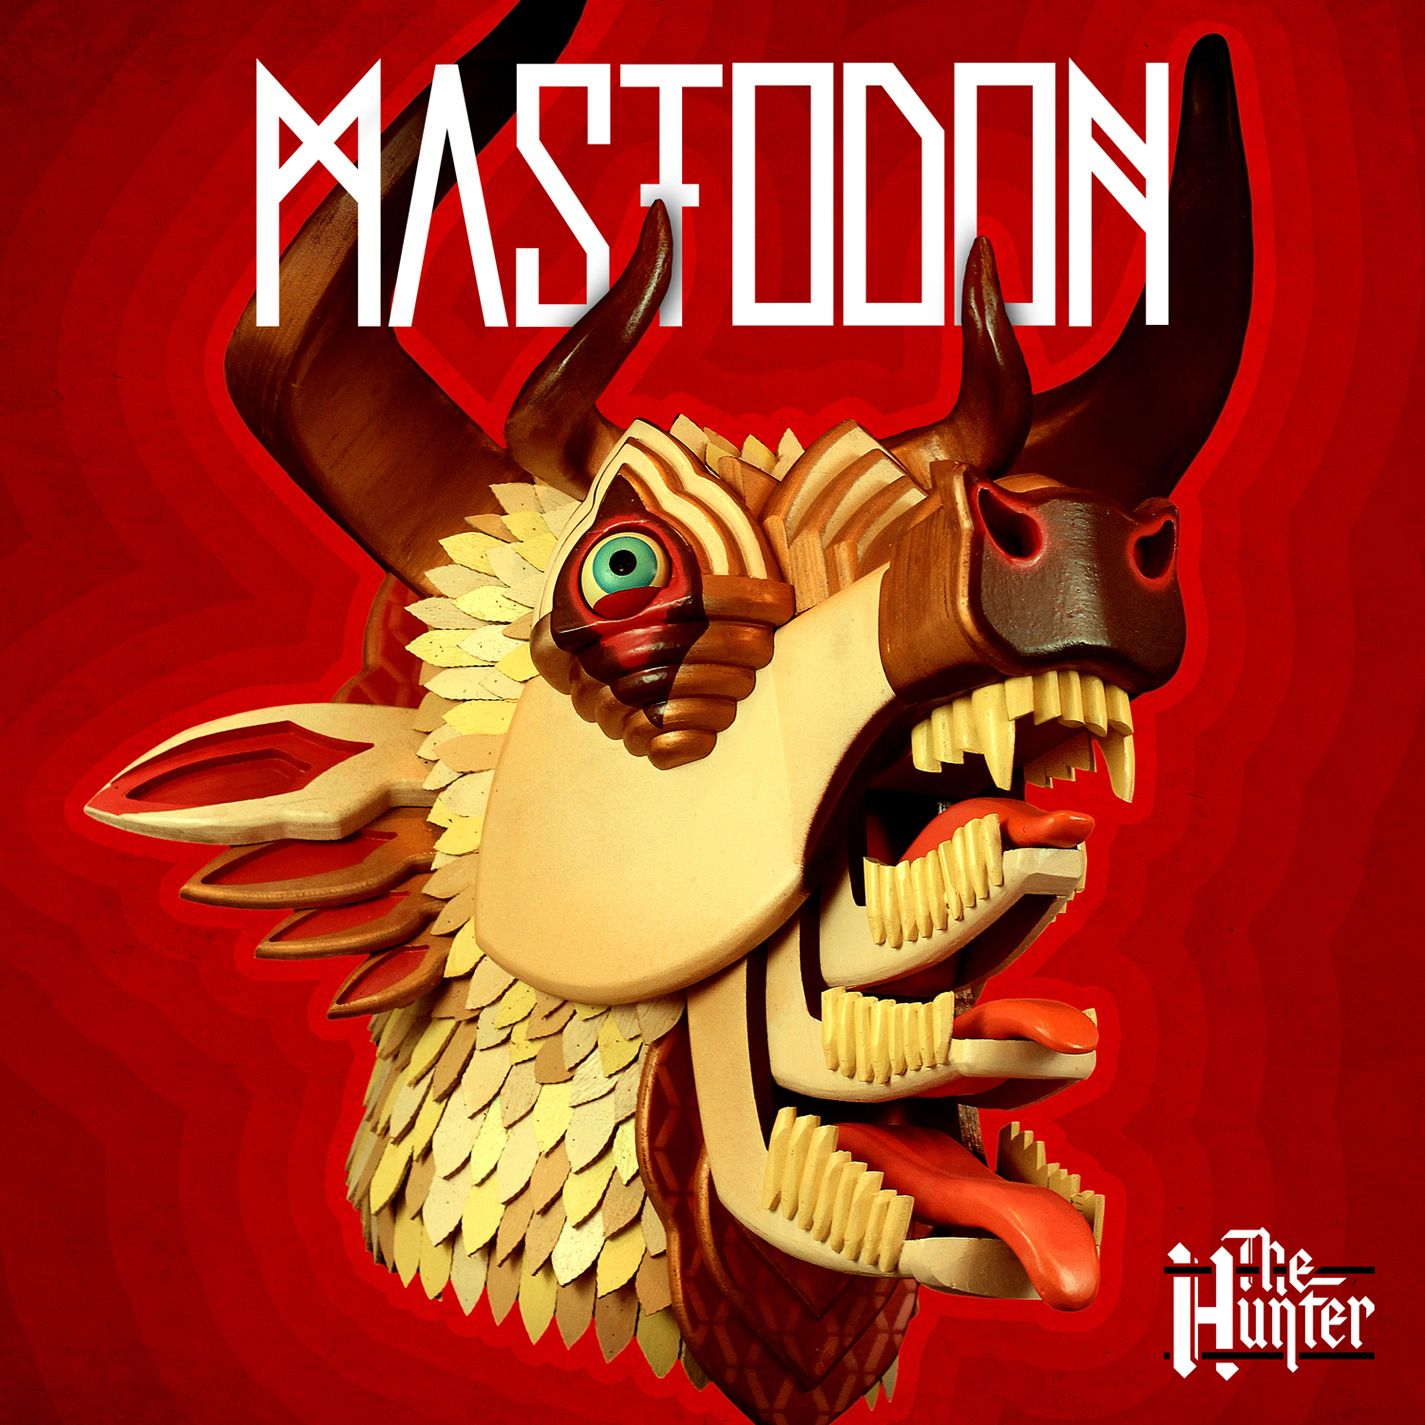 Mastodon - The Hunter album cover